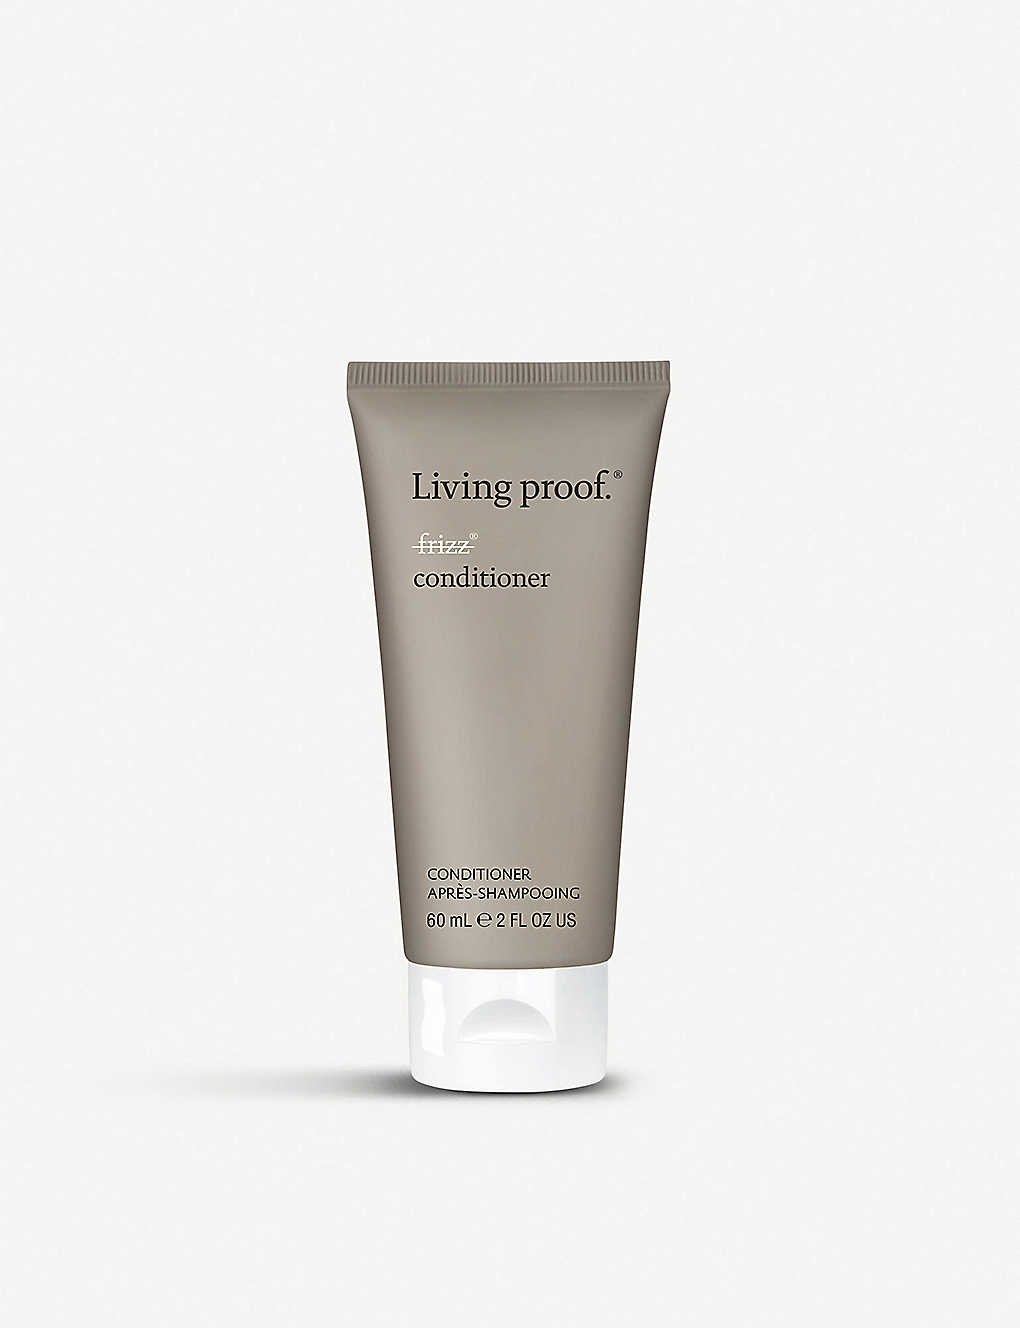 LIVING PROOF: No Frizz Conditioner 60ml